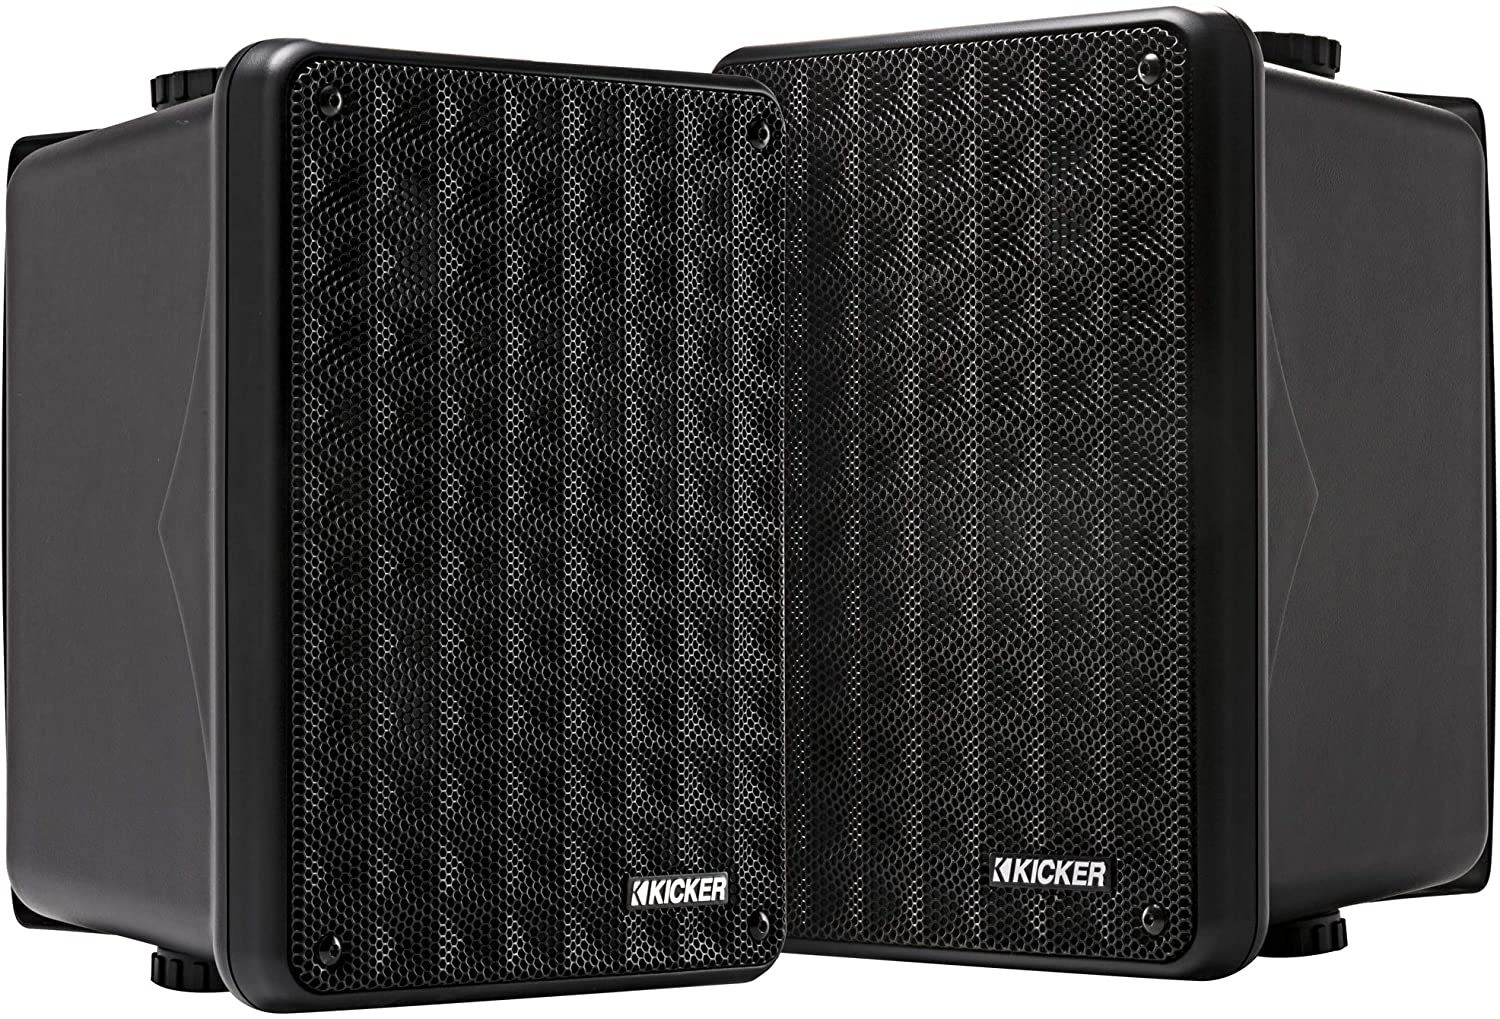 Kicker KB6 2-Way Full-Range Indoor Outdoor Speakers